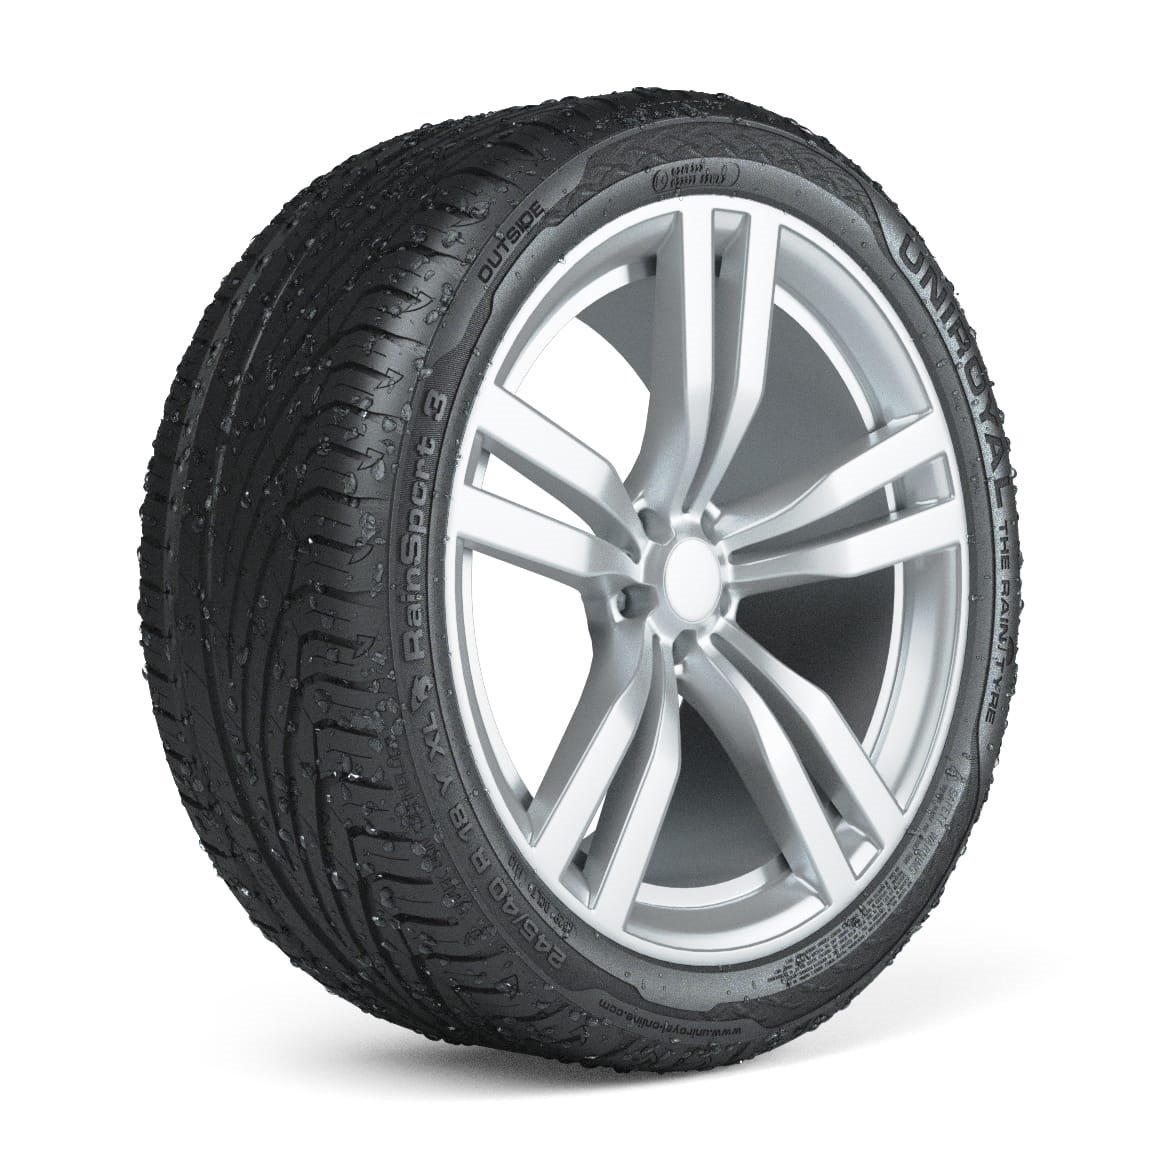 uniroyal-rainsport-3-suv-235/55-r19-105y-magico.md